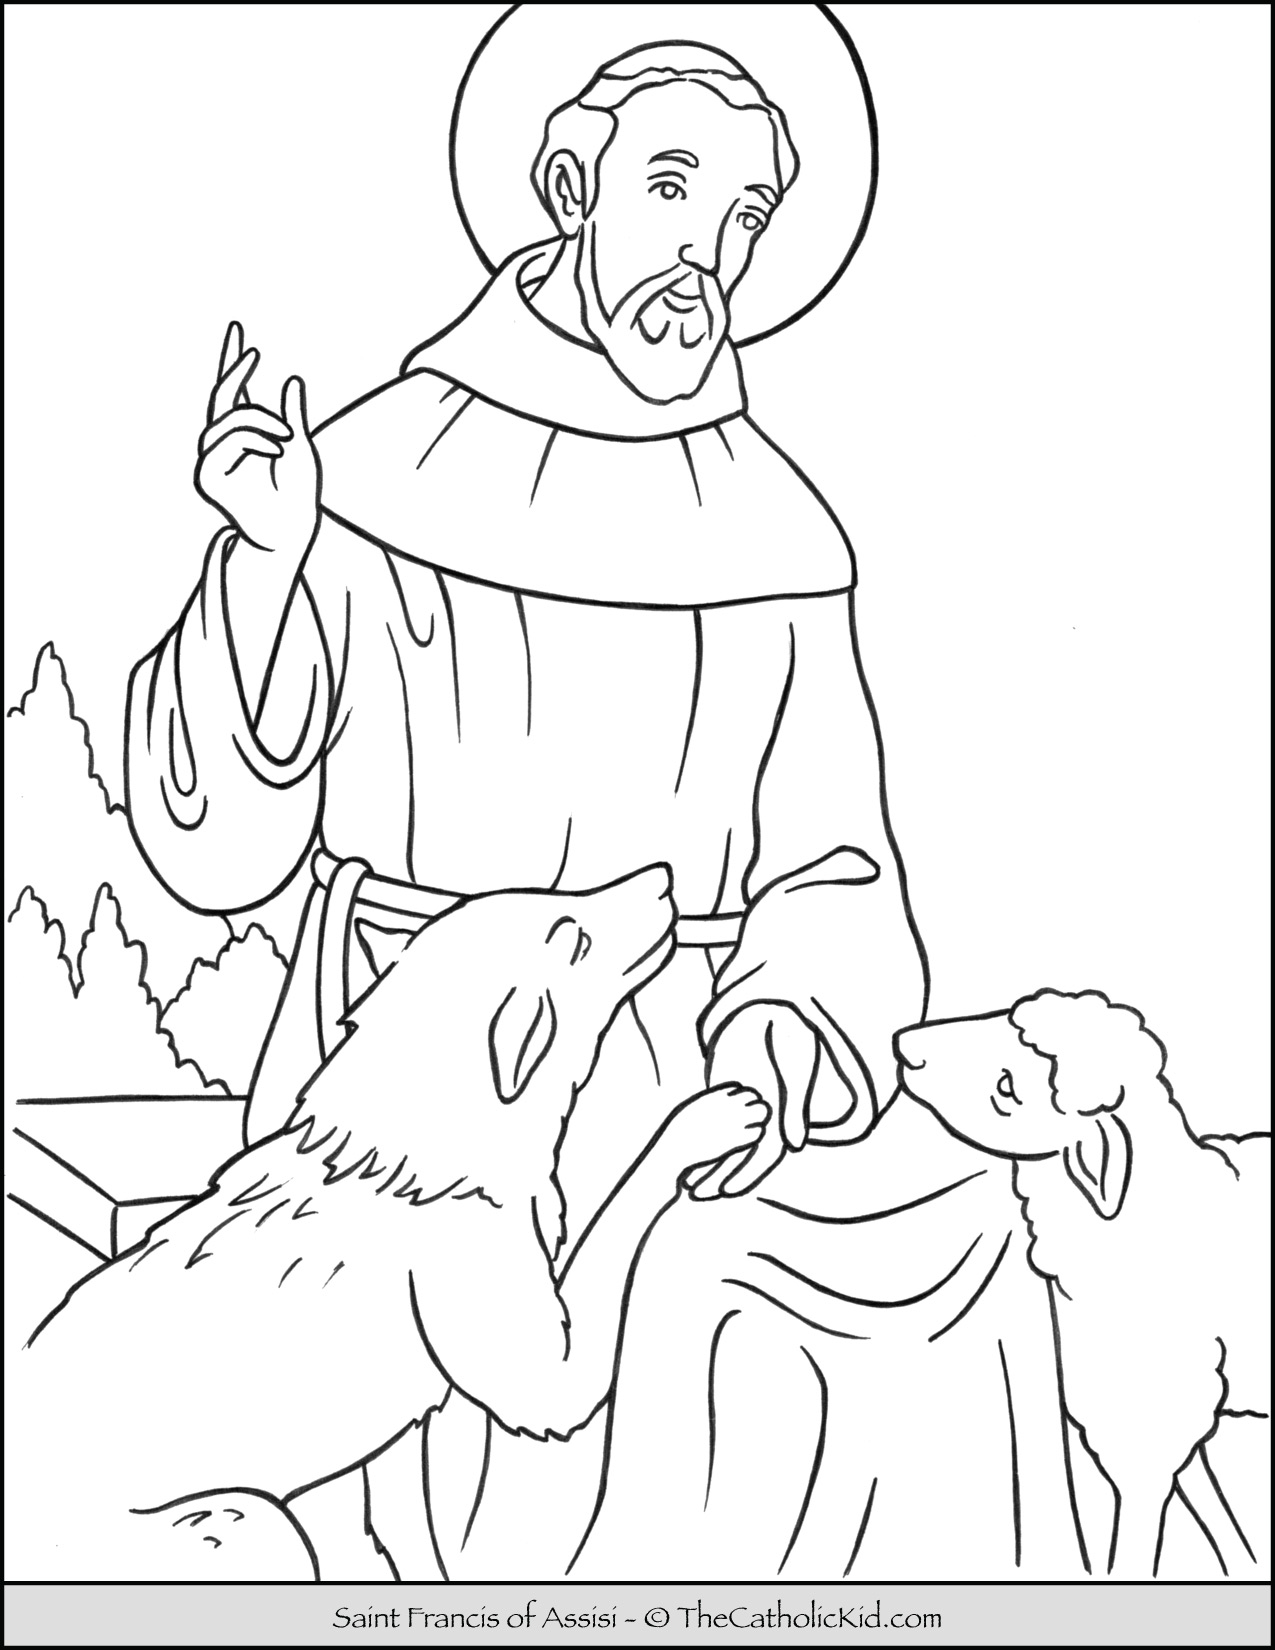 st francis of assisi coloring page 69 best images about s francisco de assis on pinterest francis of st coloring assisi page